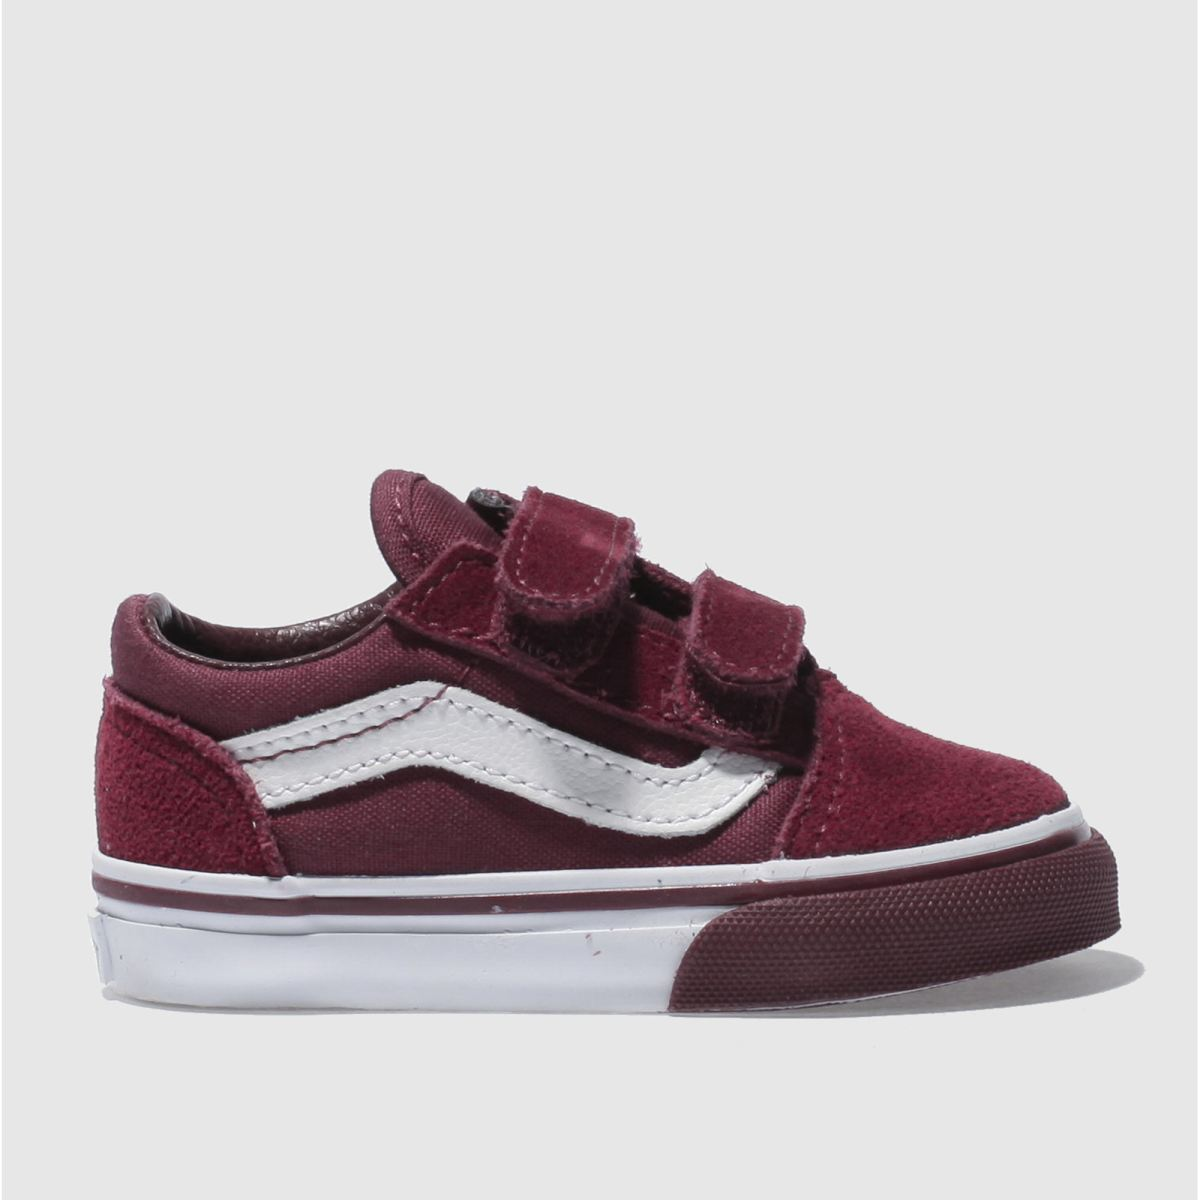 Vans Burgundy Old Skool V Unisex Toddler Toddler